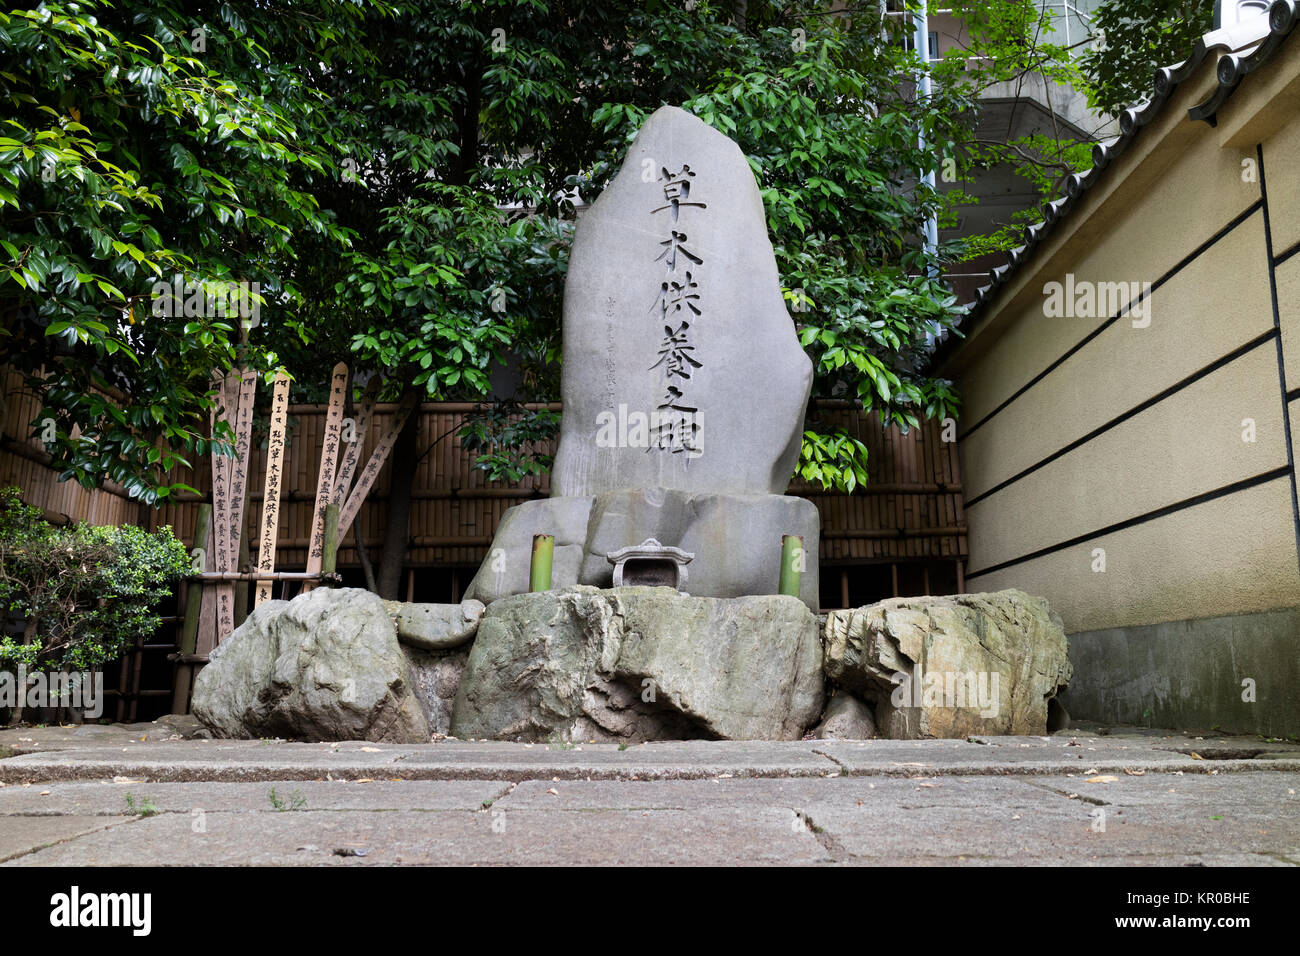 Tokyo - Japan, May 15, 2017: Buddhist gravestone for the repose of dead trees and plants - Stock Image